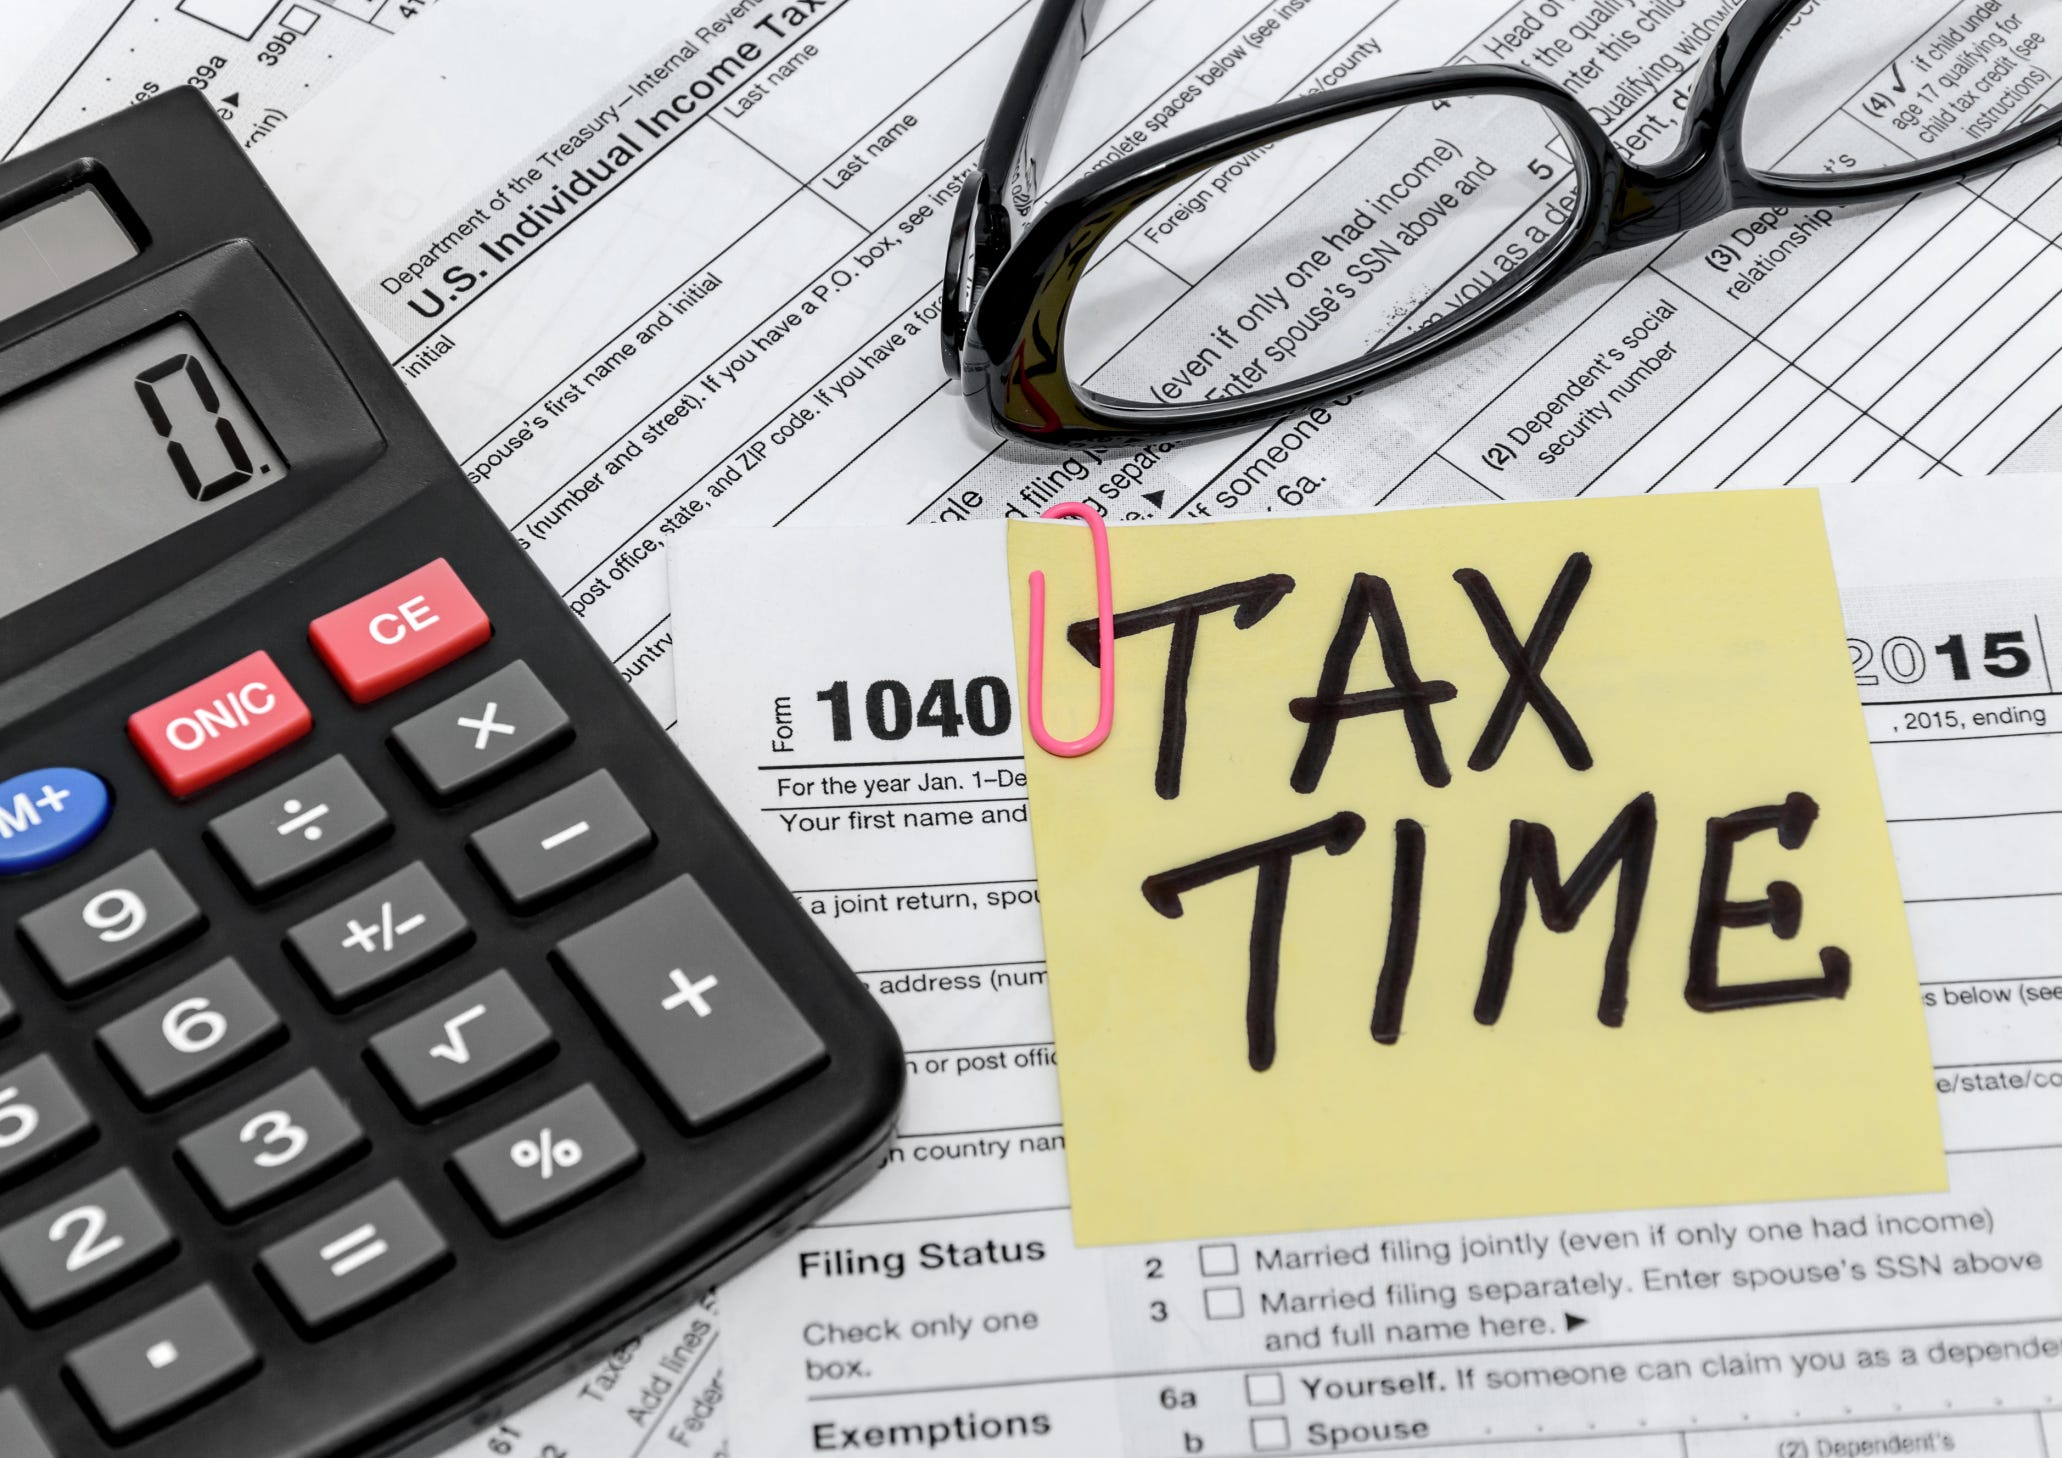 Confused on taxes? Get free advice live in Facebook chat Wed.